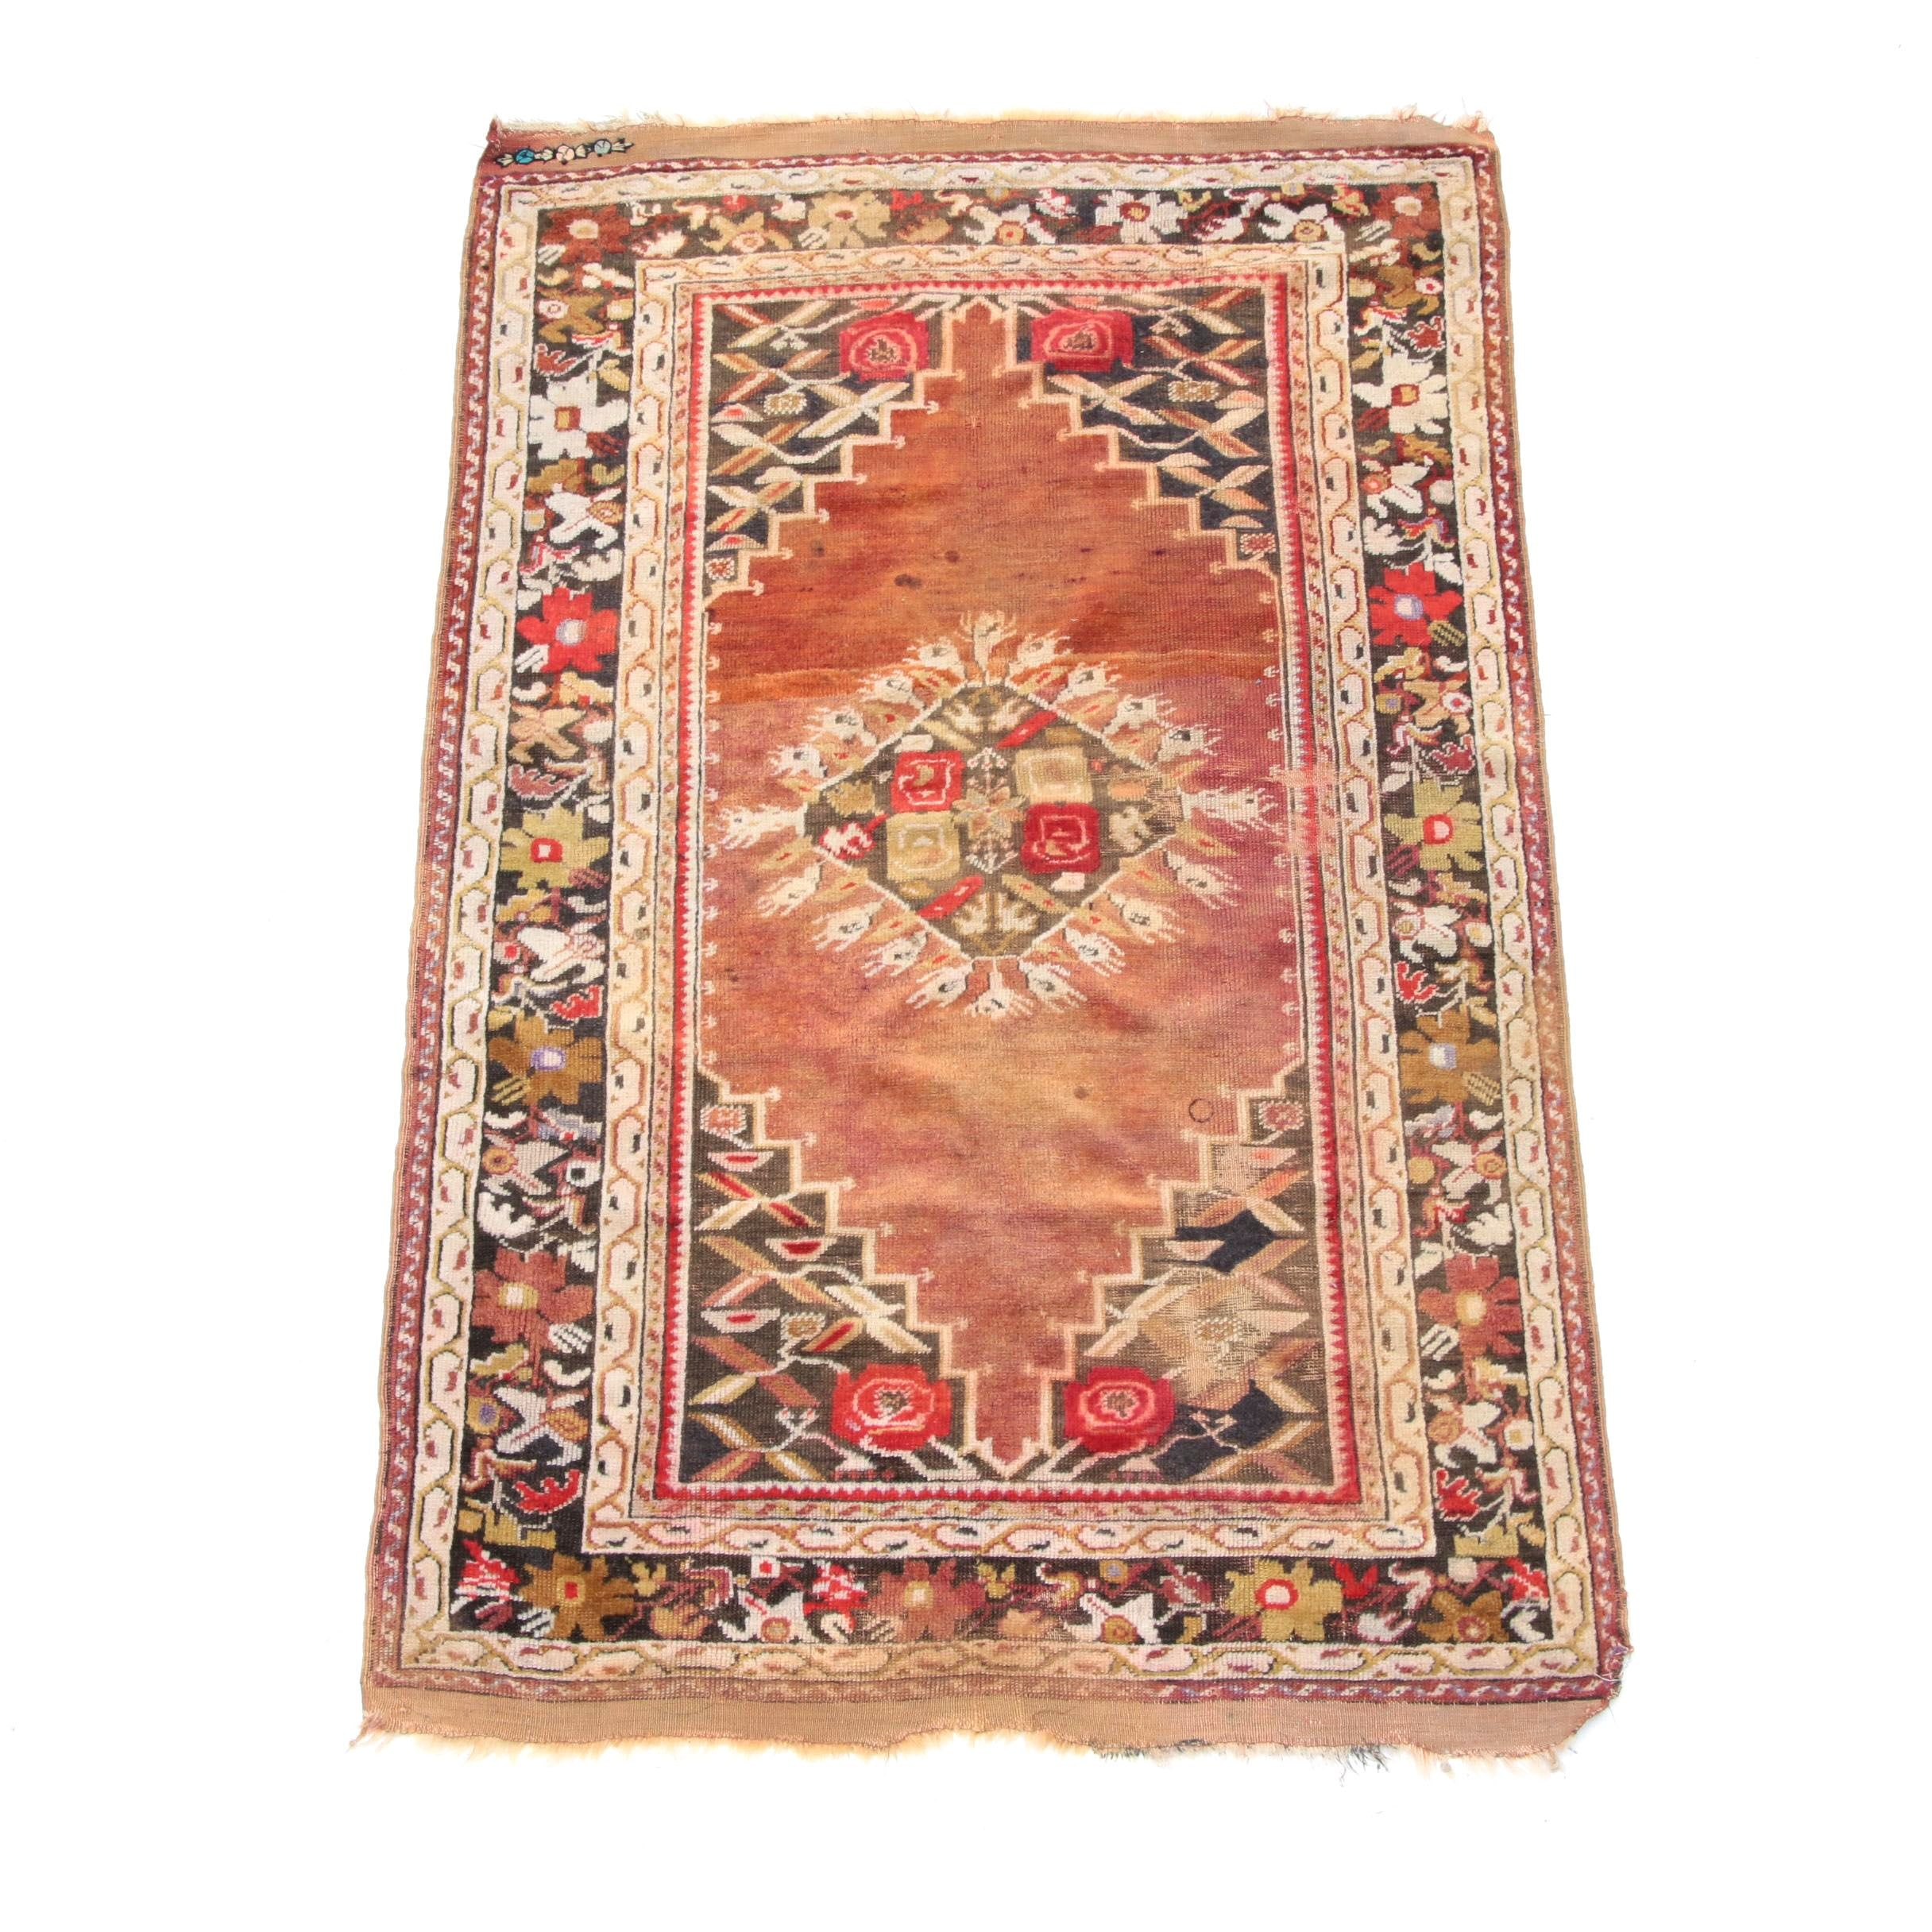 Vintage Hand-Knotted and Embroidered Anatolian Area Rug